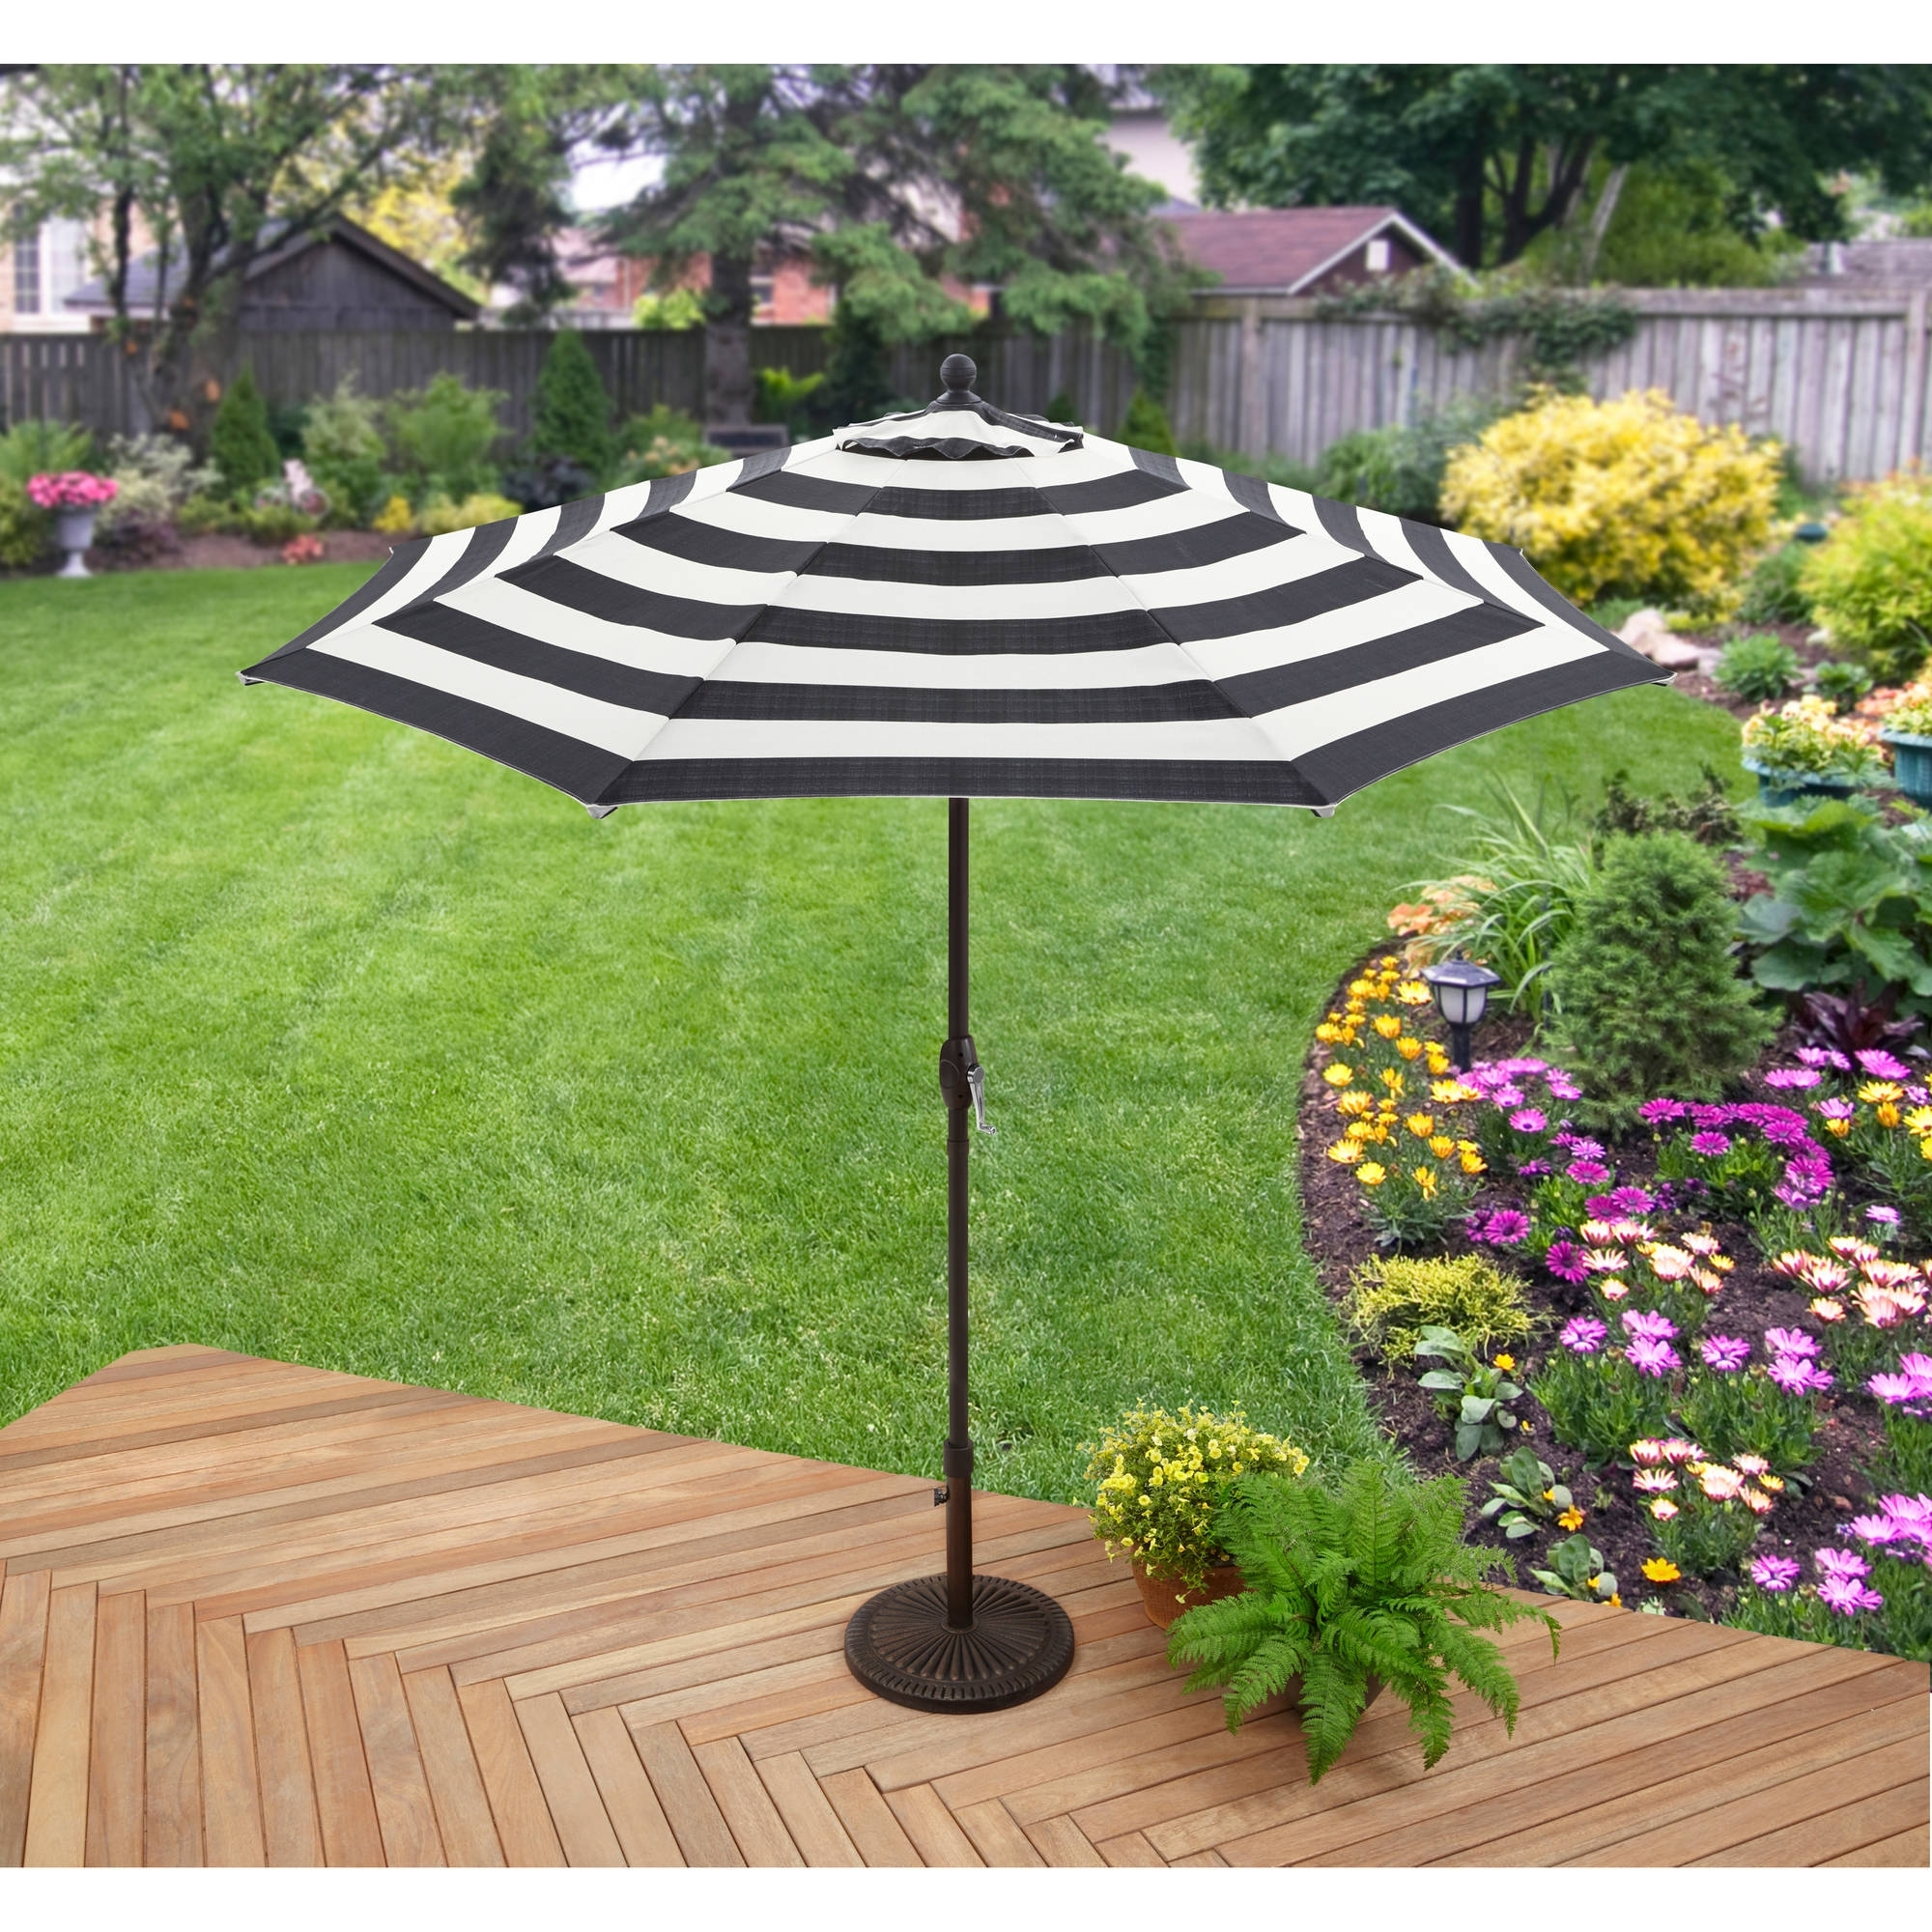 Trendy Gold Coast Patio Umbrellas Intended For Better Homes And Gardens 9' Market Umbrella, Cabana Stripe – Walmart (Gallery 20 of 20)